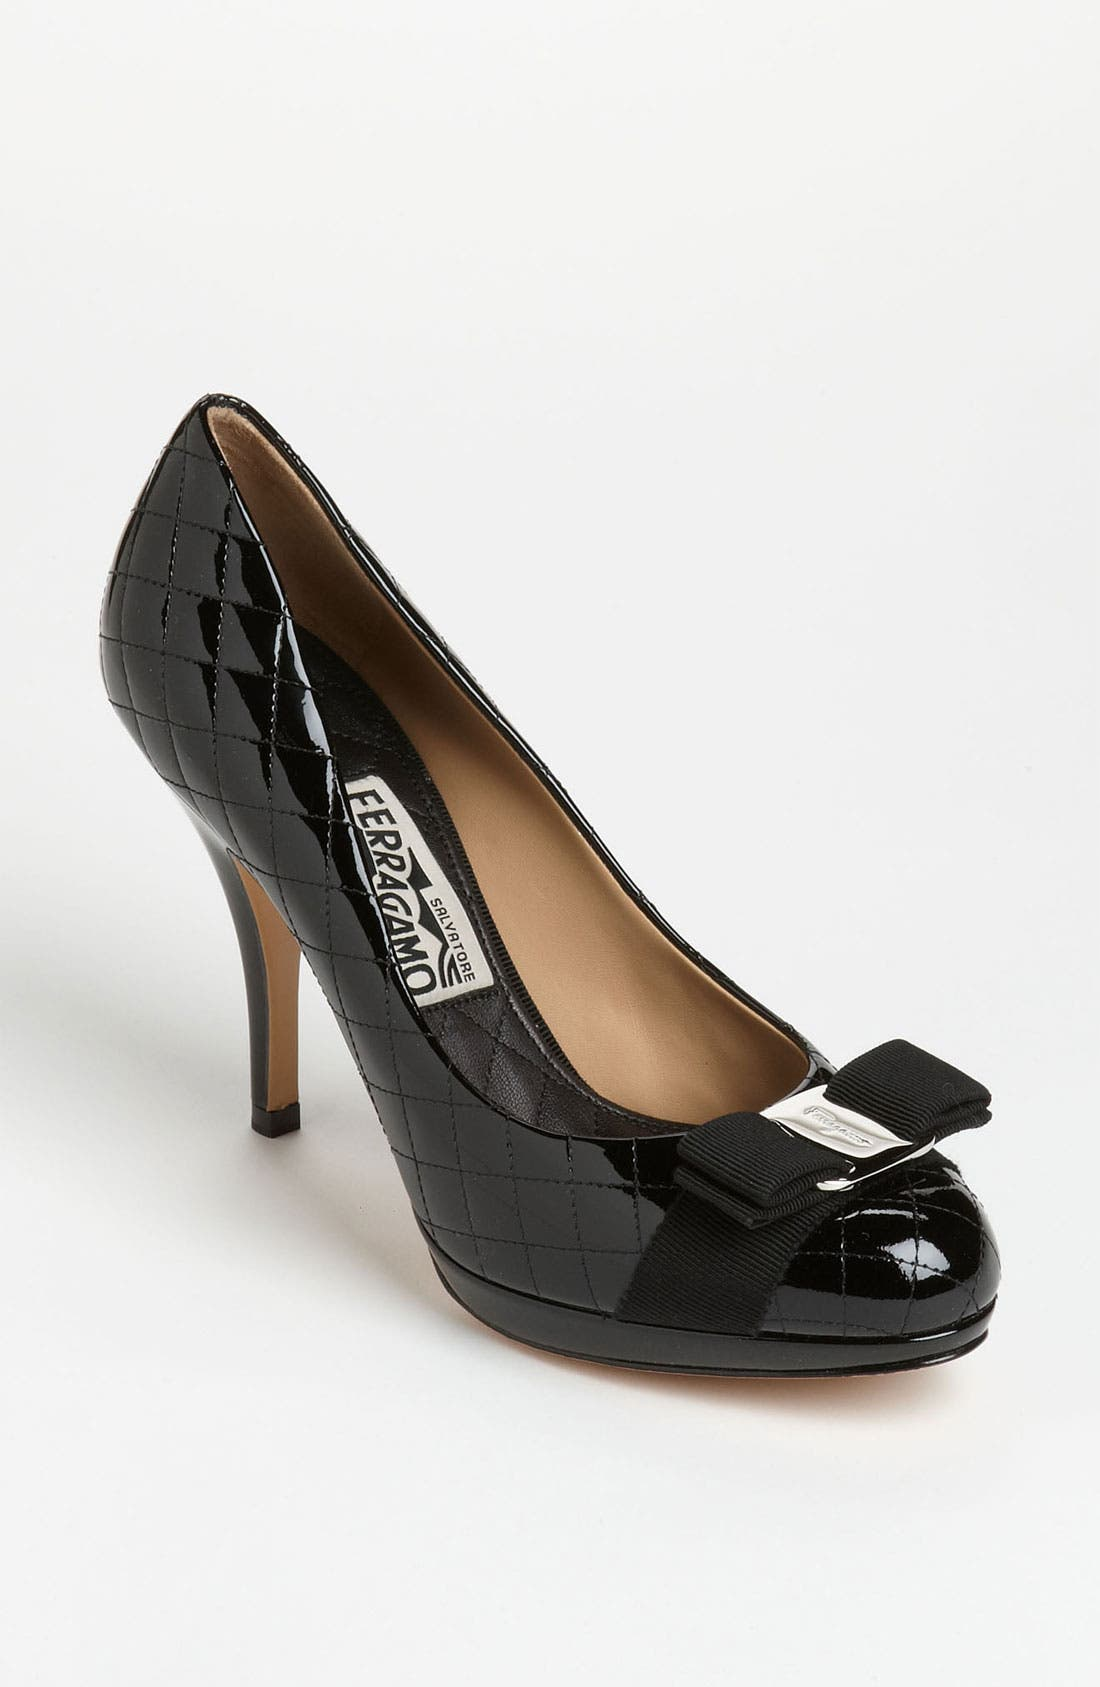 Alternate Image 1 Selected - Salvatore Ferragamo 'Sharla' Pump